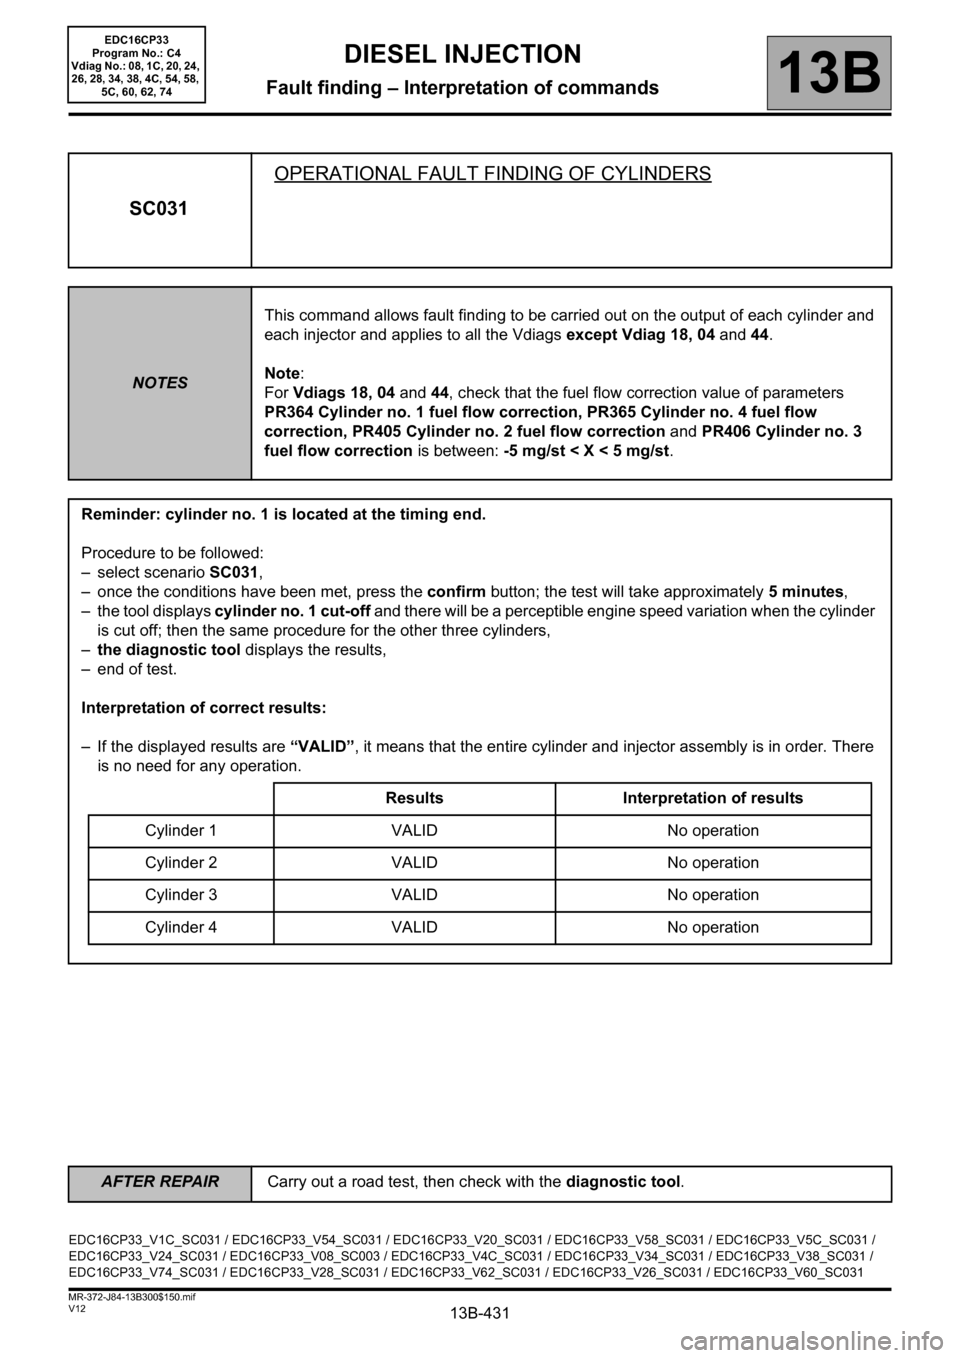 RENAULT SCENIC 2012 J95 / 3.G Engine And Peripherals EDC16CP33 Workshop Manual, Page 431